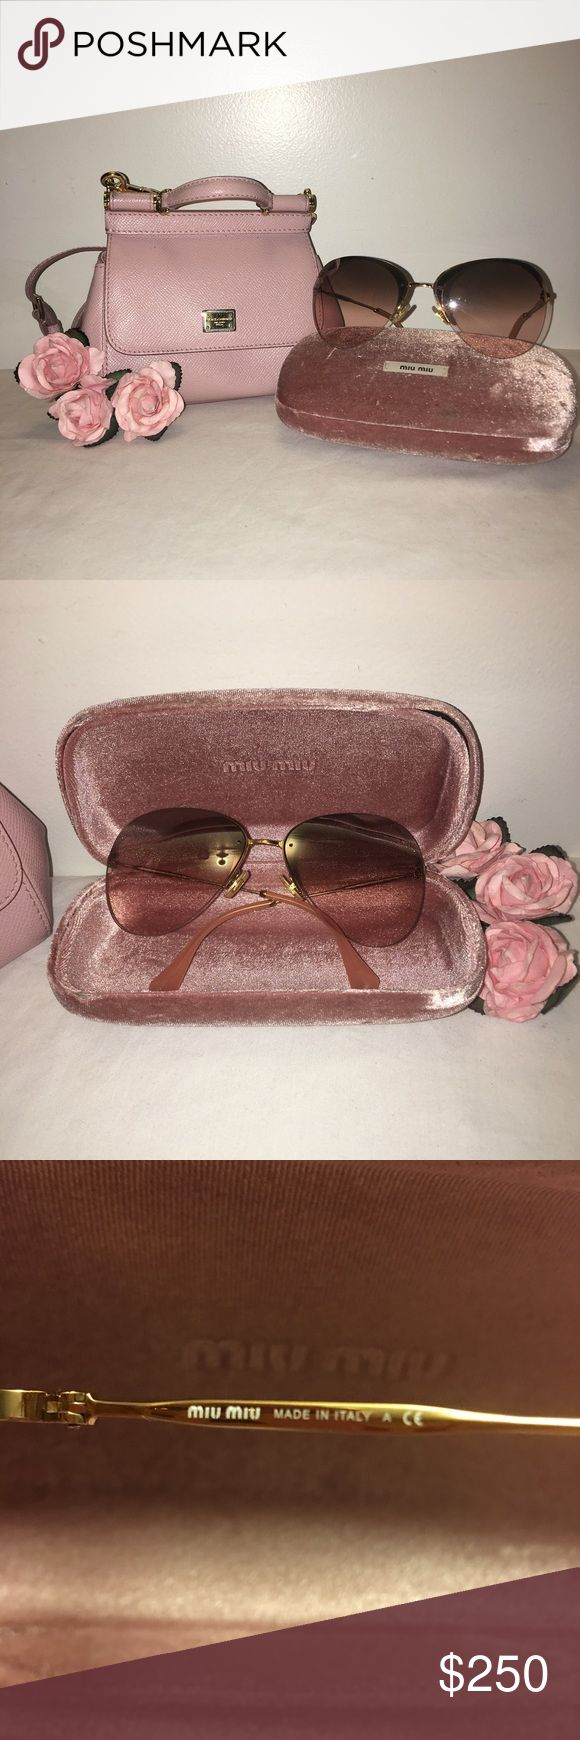 Pink MIU MIU sunglasses 🌸 One of the cutest and girly sunglasses I've owned!!! Authentic and comes in its case but I've lost its little baggie and cloth :( pink and gold glasses, and pink tinted lens. Cat eye look. SO CUTE! Really need the money but I'd rather keep it then giving it away for cheap so no offers on this one; price firm sorry. Will contain a gift (closet cleanout!) 🌸 Miu Miu Accessories Sunglasses